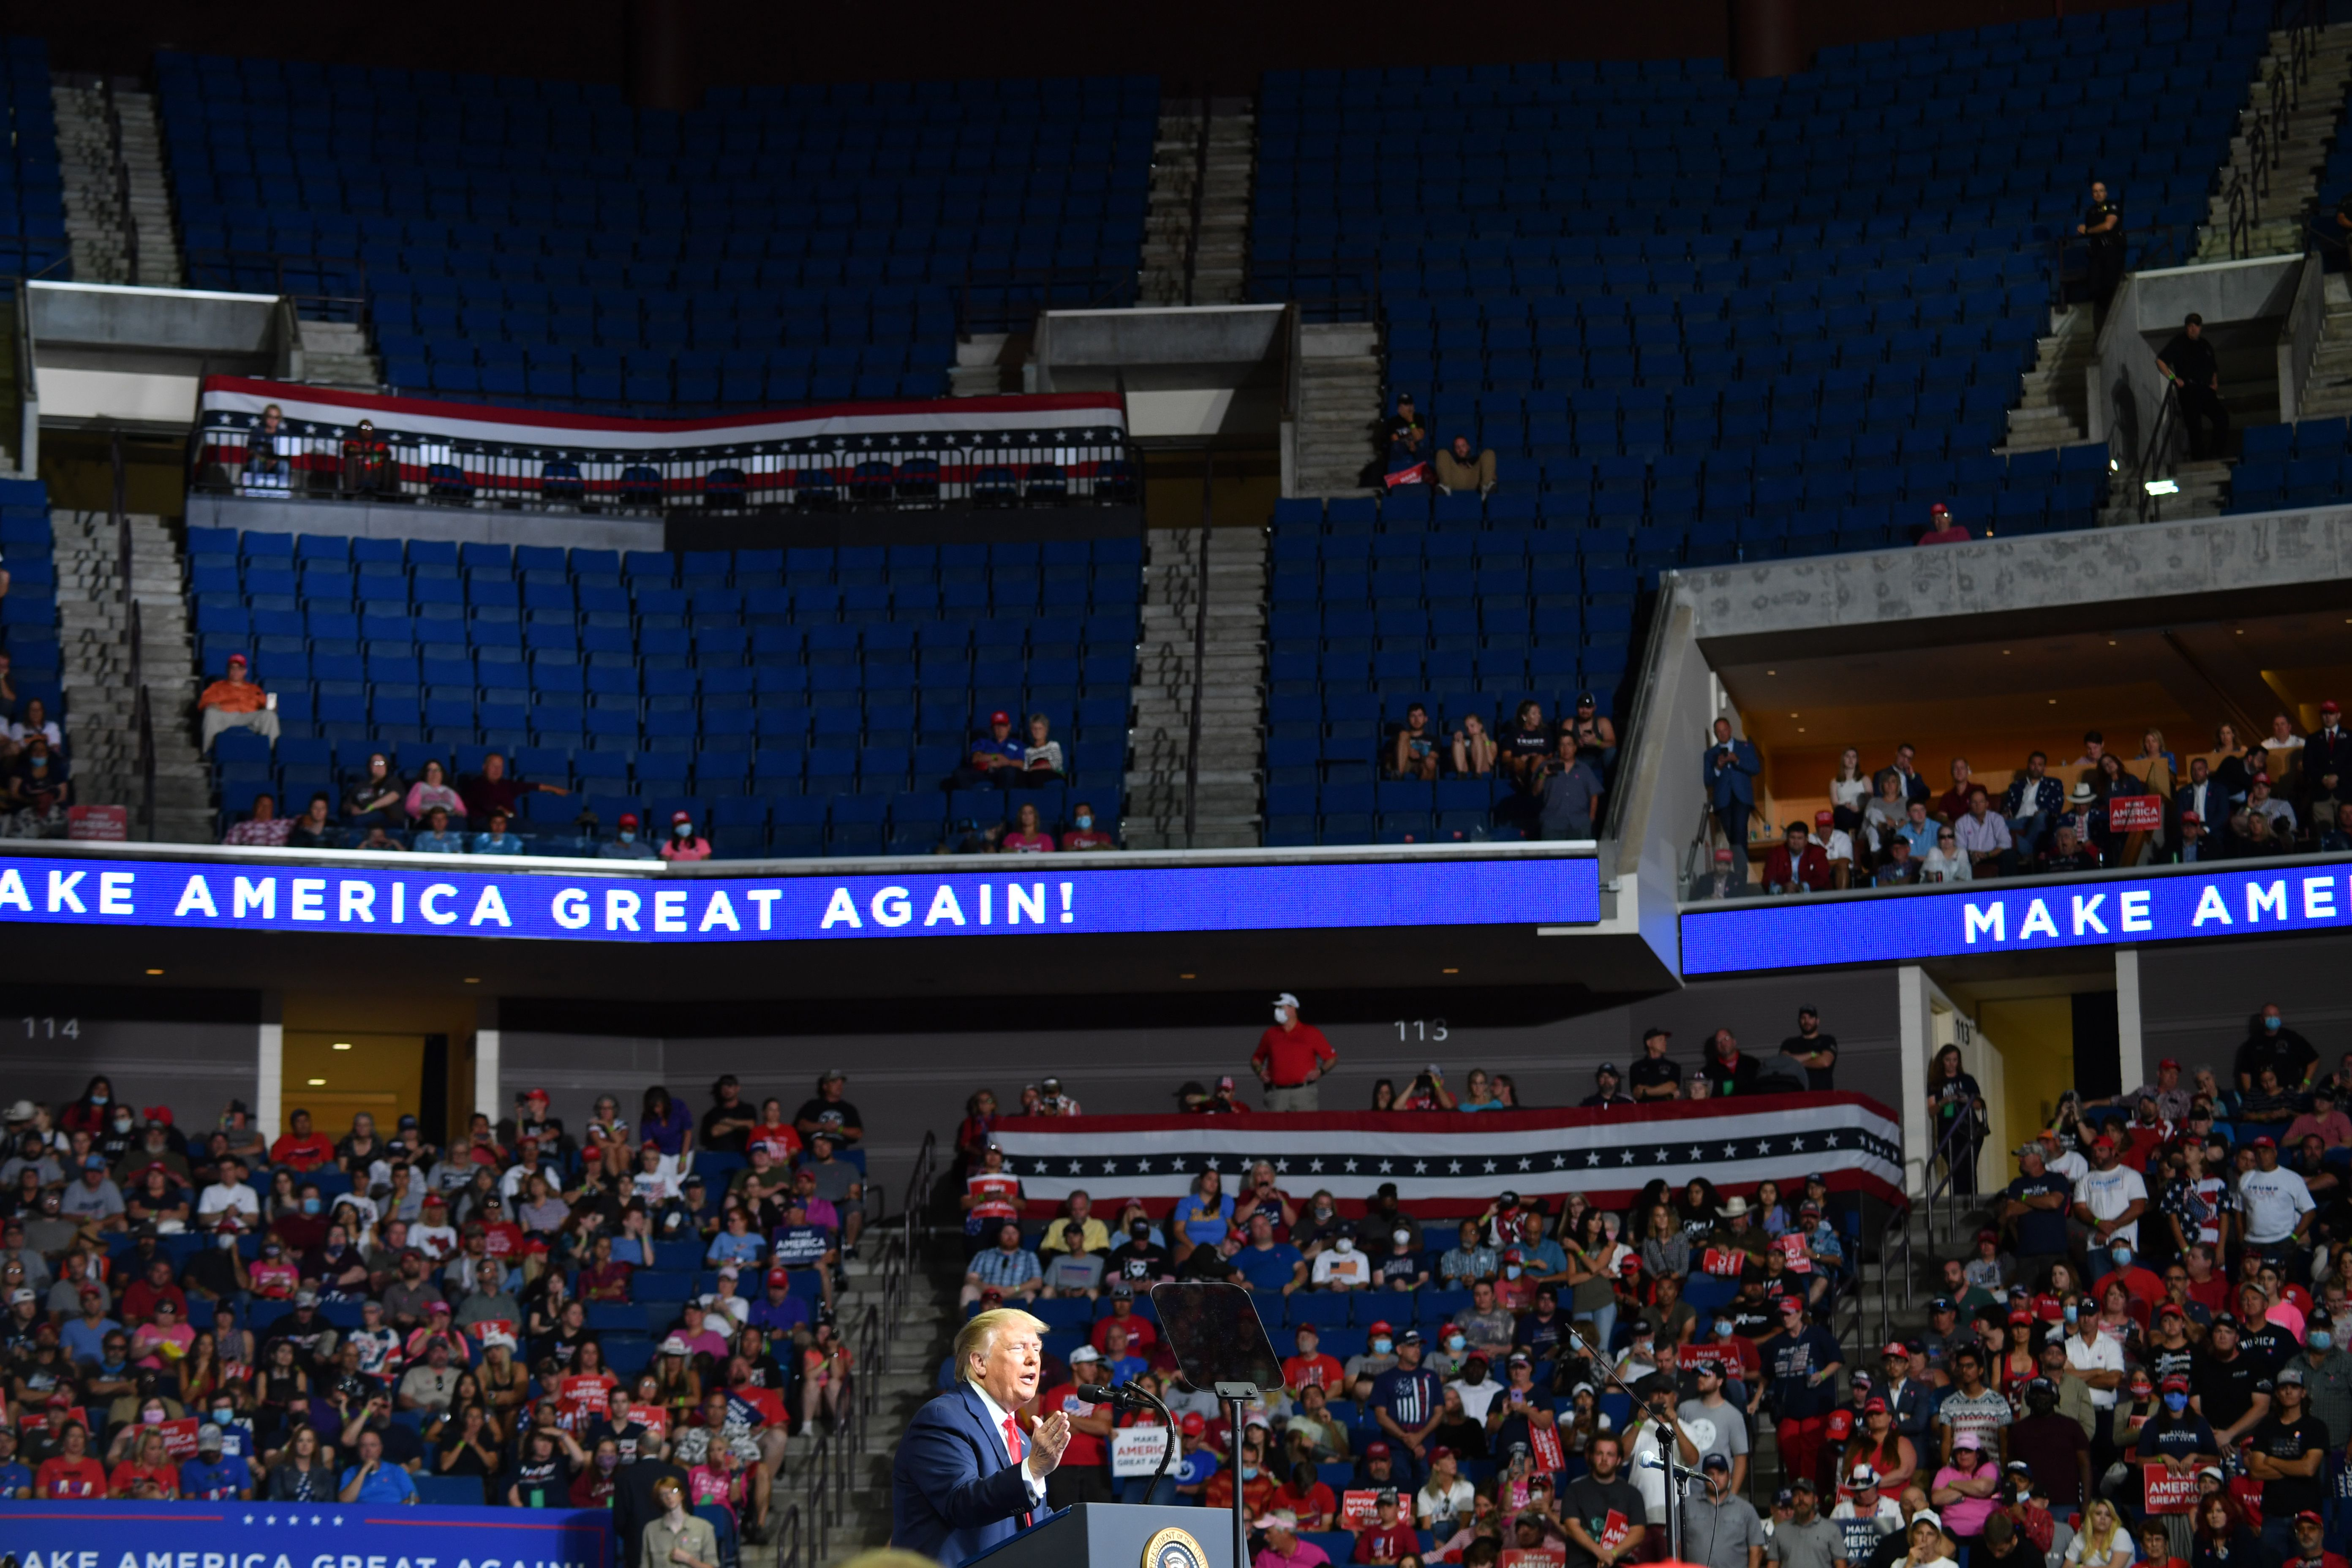 The upper section of the arena is seen partially empty as US President Donald Trump speaks during a campaign rally at the BOK Center on June 20, 2020 in Tulsa, Oklahoma. - Hundreds of supporters lined up early for Donald Trump's first political rally in months, saying the risk of contracting COVID-19 in a big, packed arena would not keep them from hearing the president's campaign message. (Photo by Nicholas Kamm / AFP) (Photo by NICHOLAS KAMM/AFP via Getty Images)